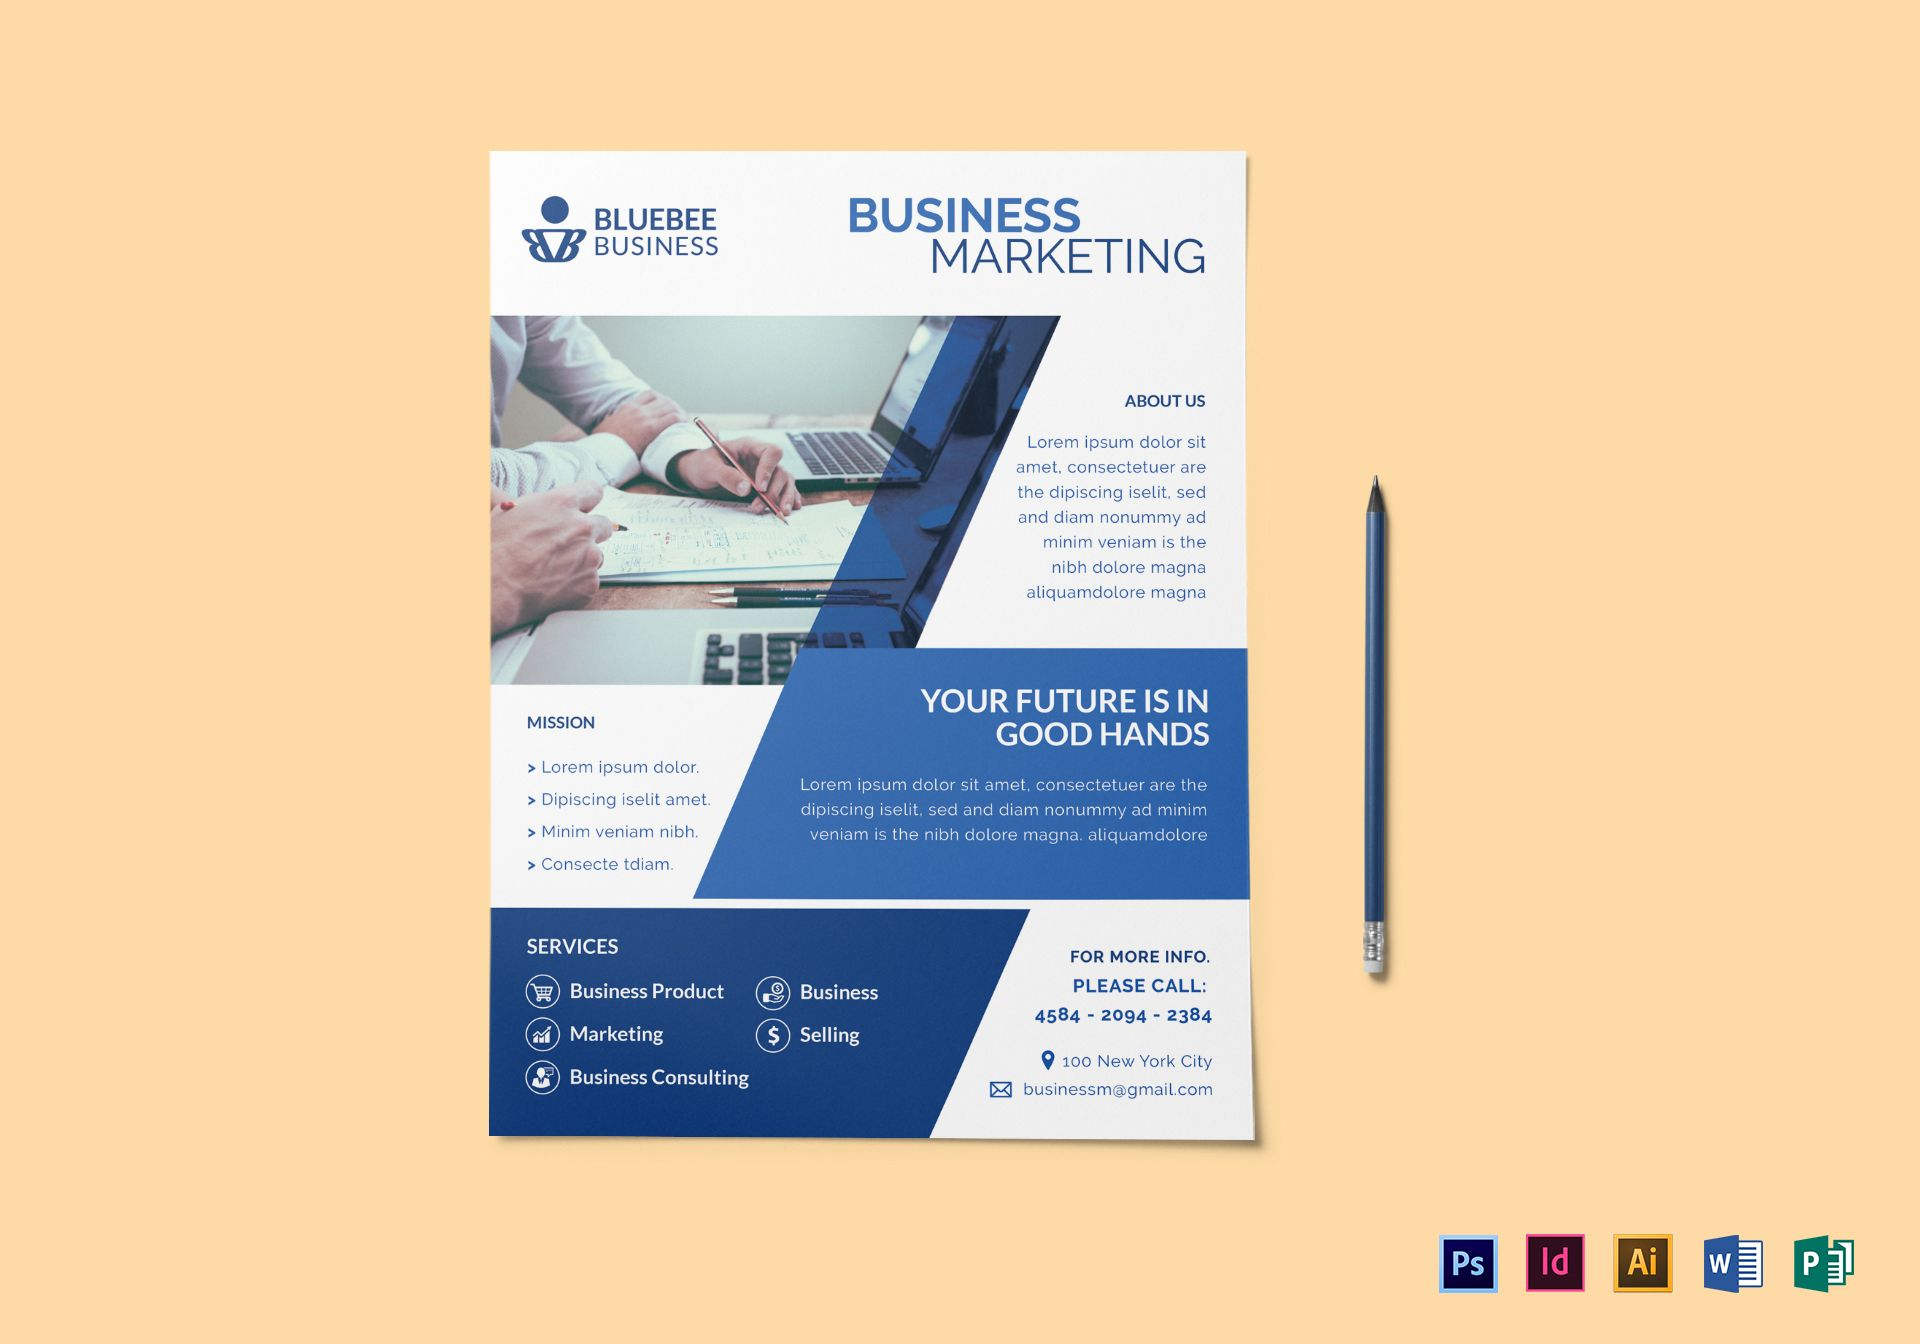 new product flyer template